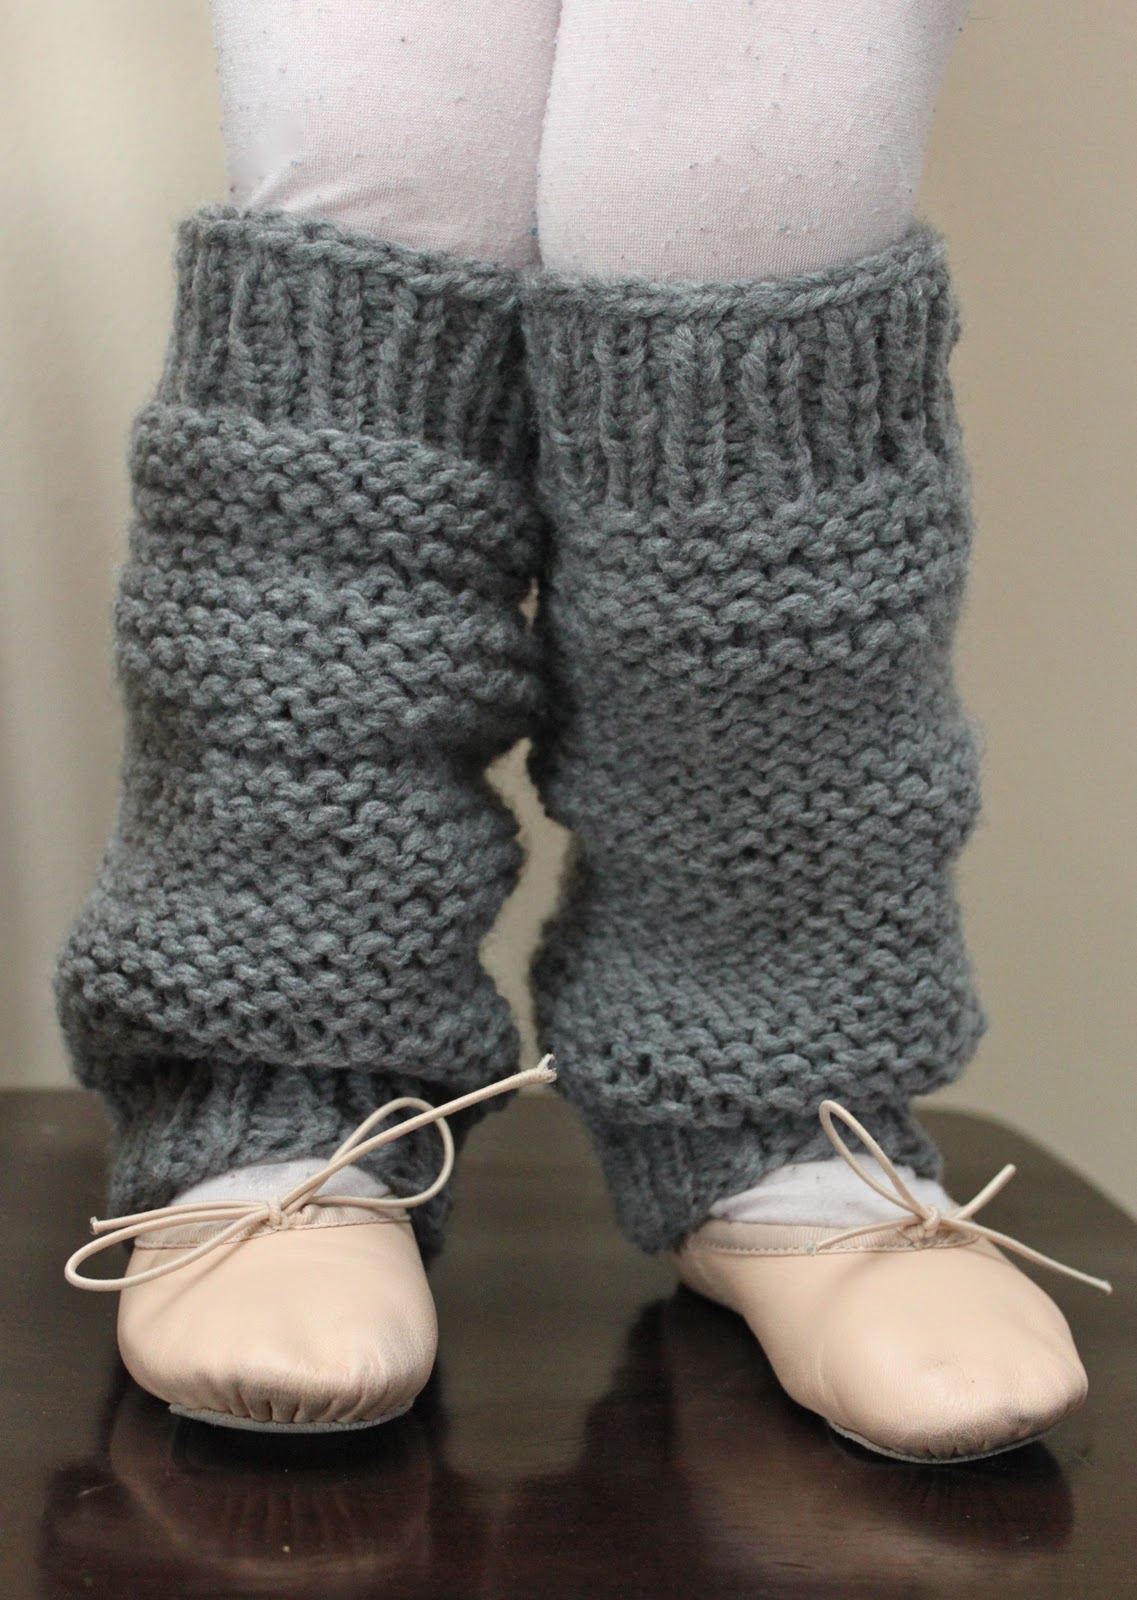 Little Girls\' Knit Legwarmers {A Pattern} - Smashed Peas & Carrots